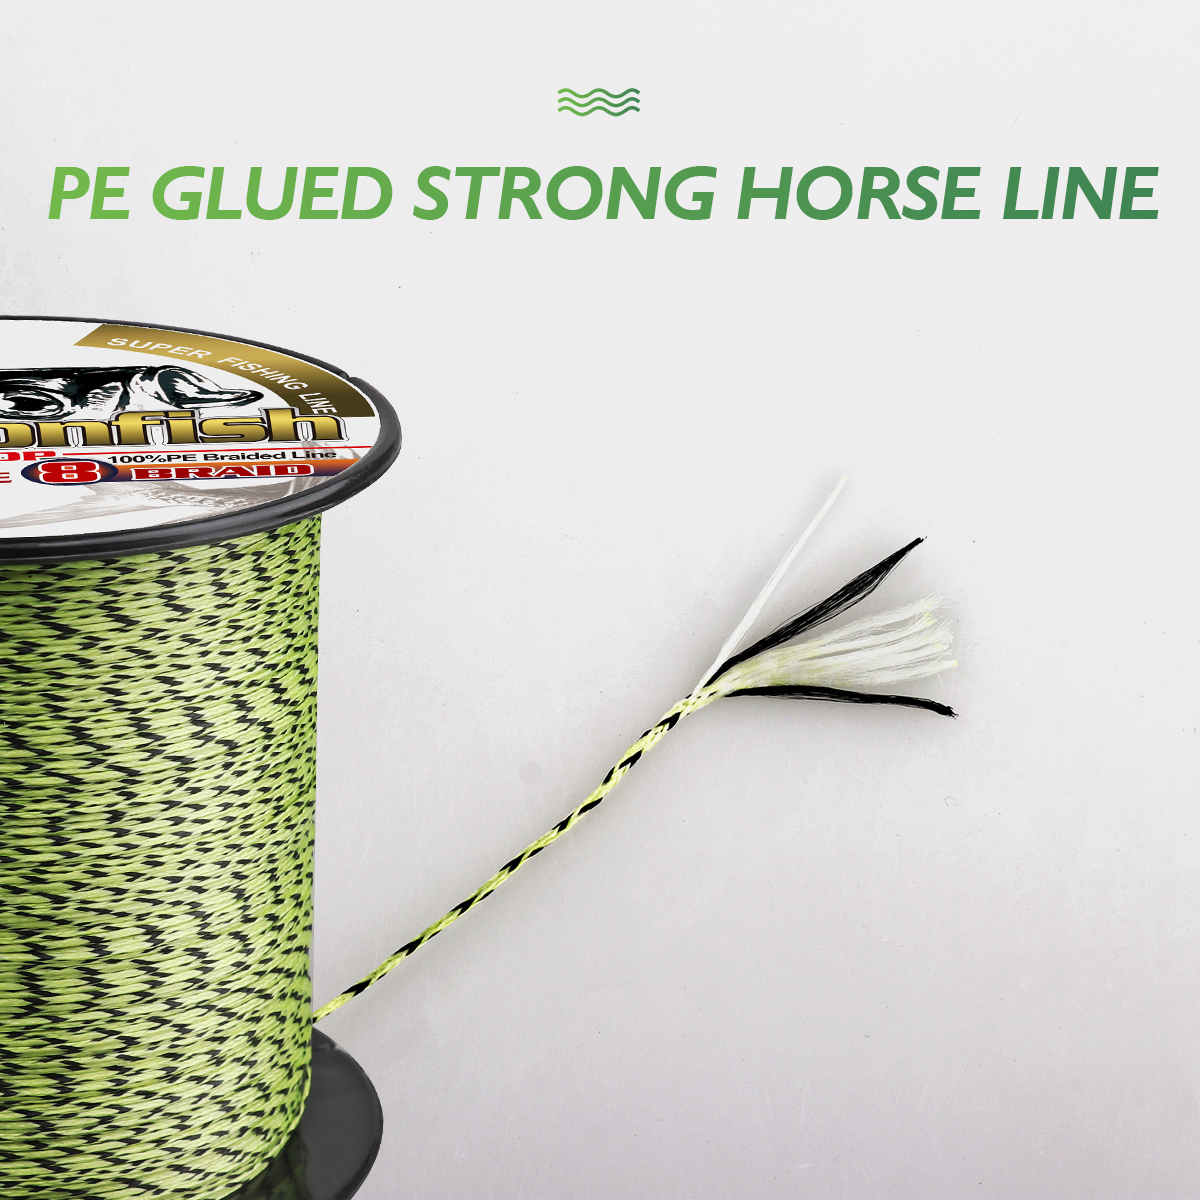 Quality fishing tackle products online braided fishing line 8 Strands 500M 1000M pe ice fishing saltwater 8 300LBS thread cord-in Fishing Lines from Sports & Entertainment